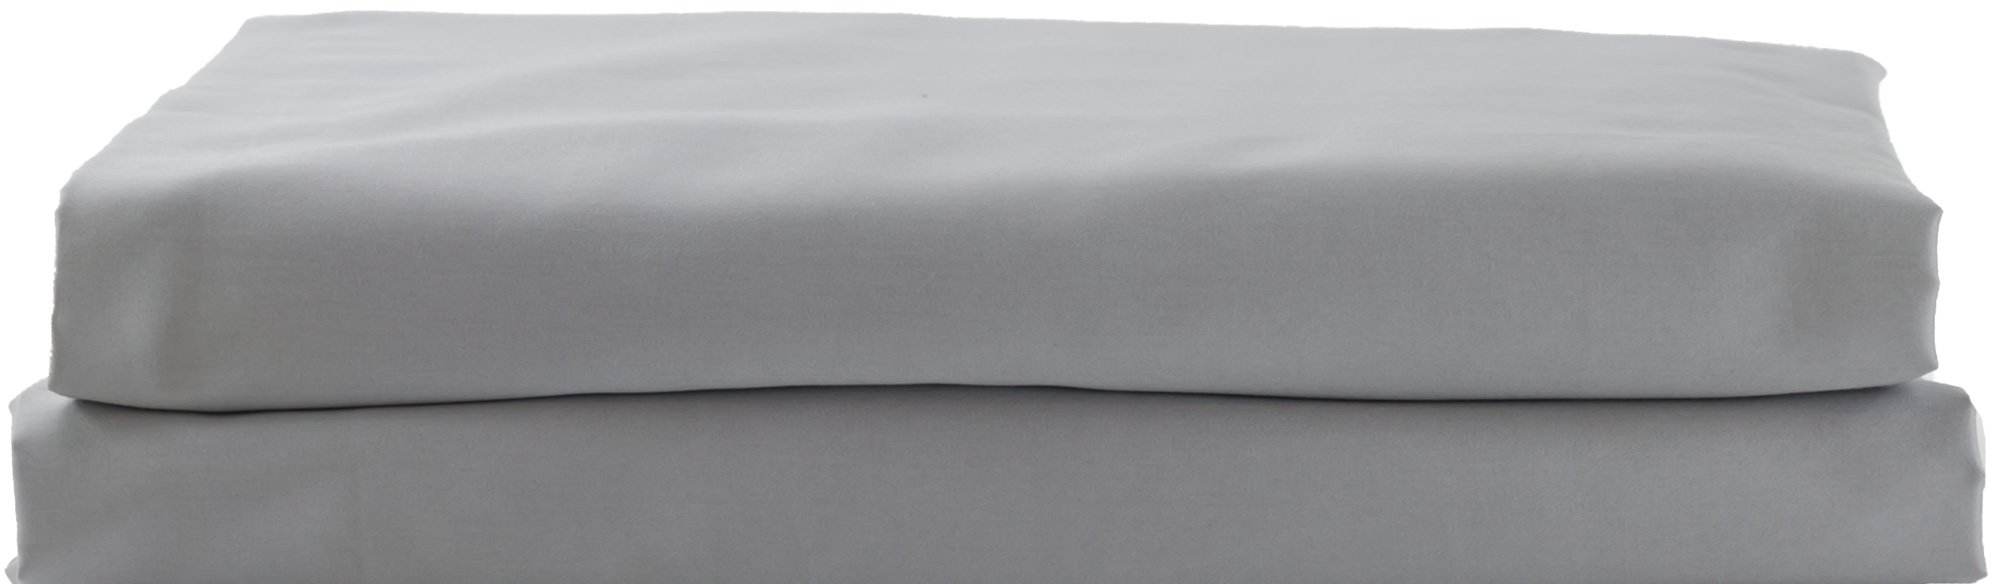 Hotel Sheets Direct 100% Egyptian Cotton 4 Piece Bed Sheet Set - Luxurious Sateen Weave - Ultimate Softness (Gray, Queen)